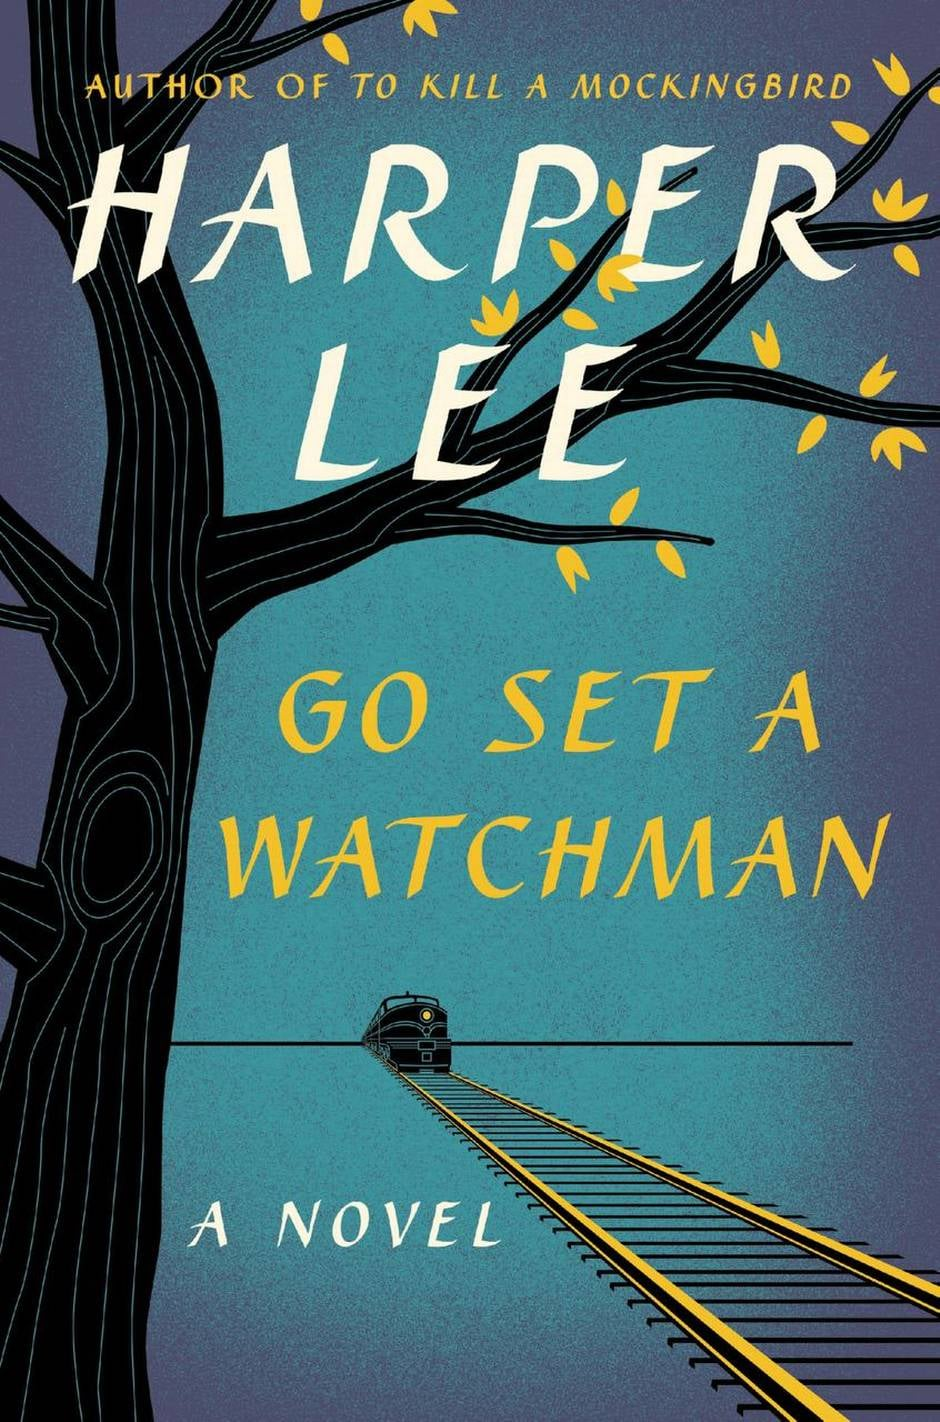 BOOKS_HARPER_LEE_44912233.JPG